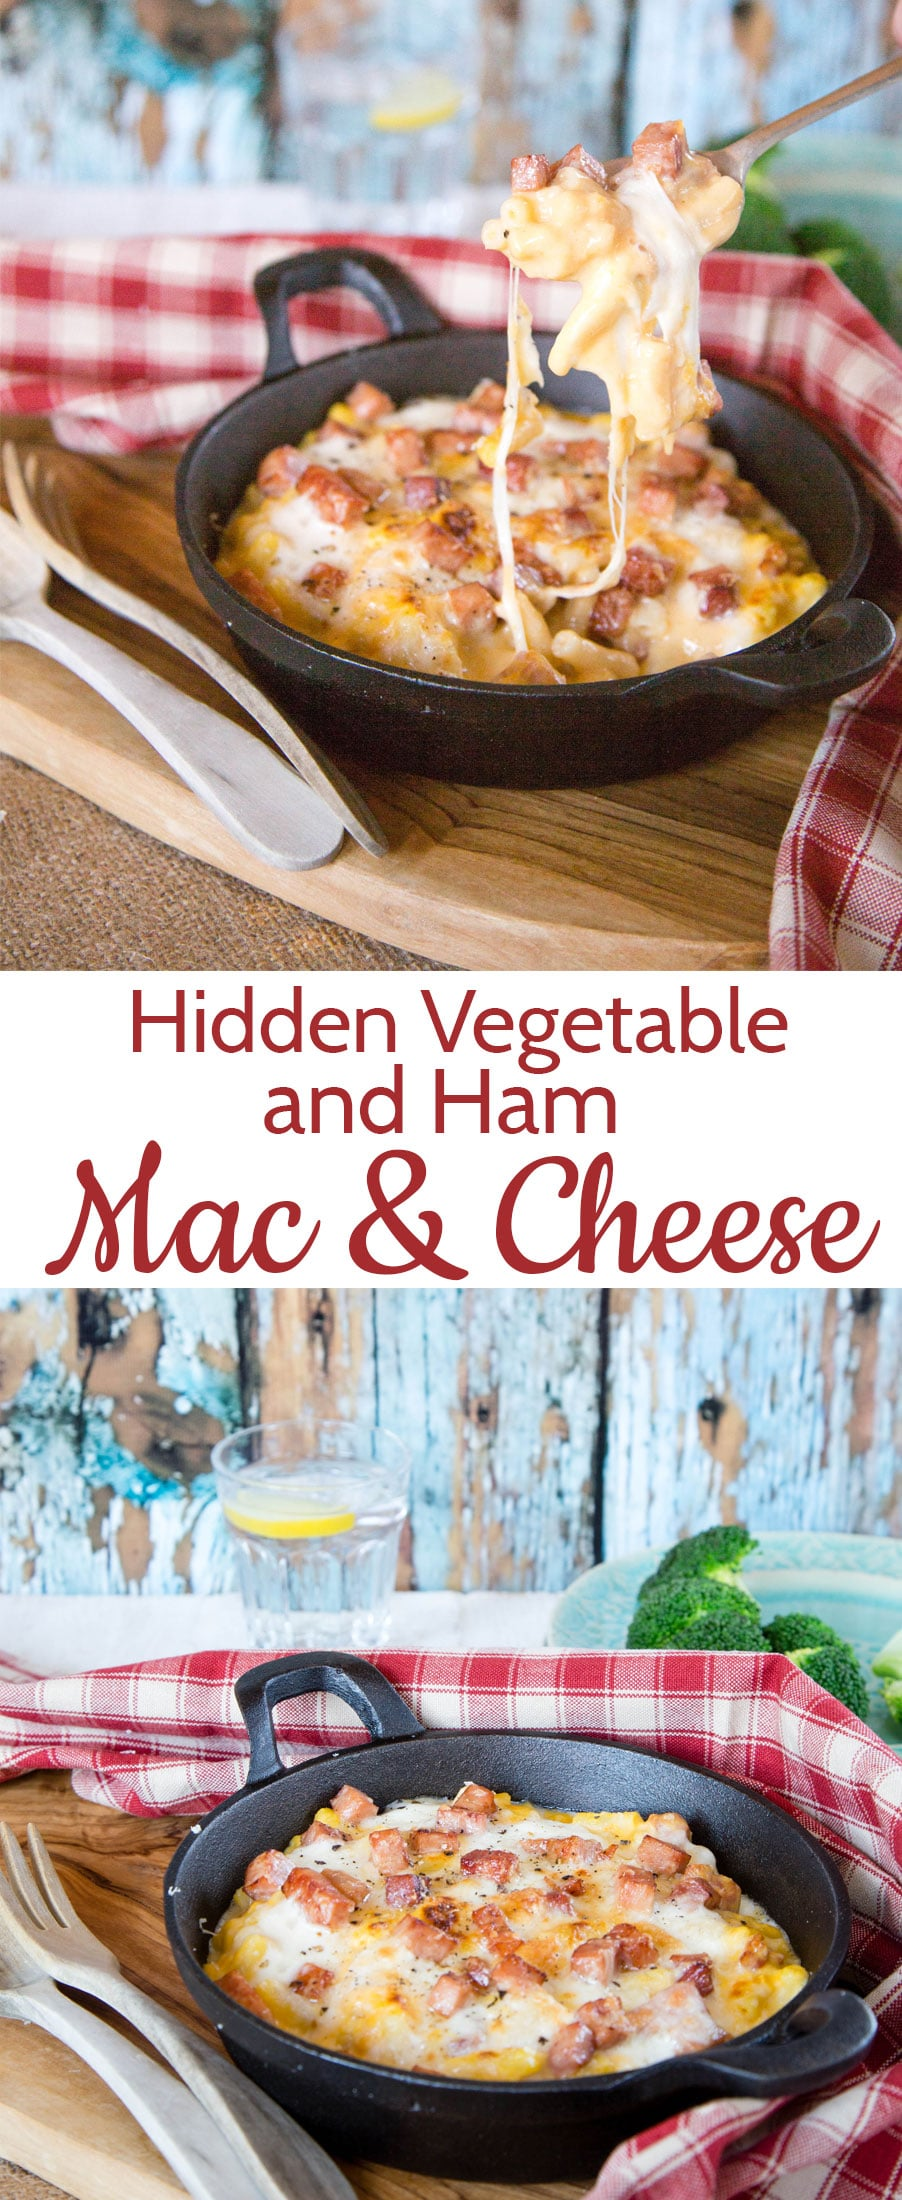 mac-and-cheese-lp